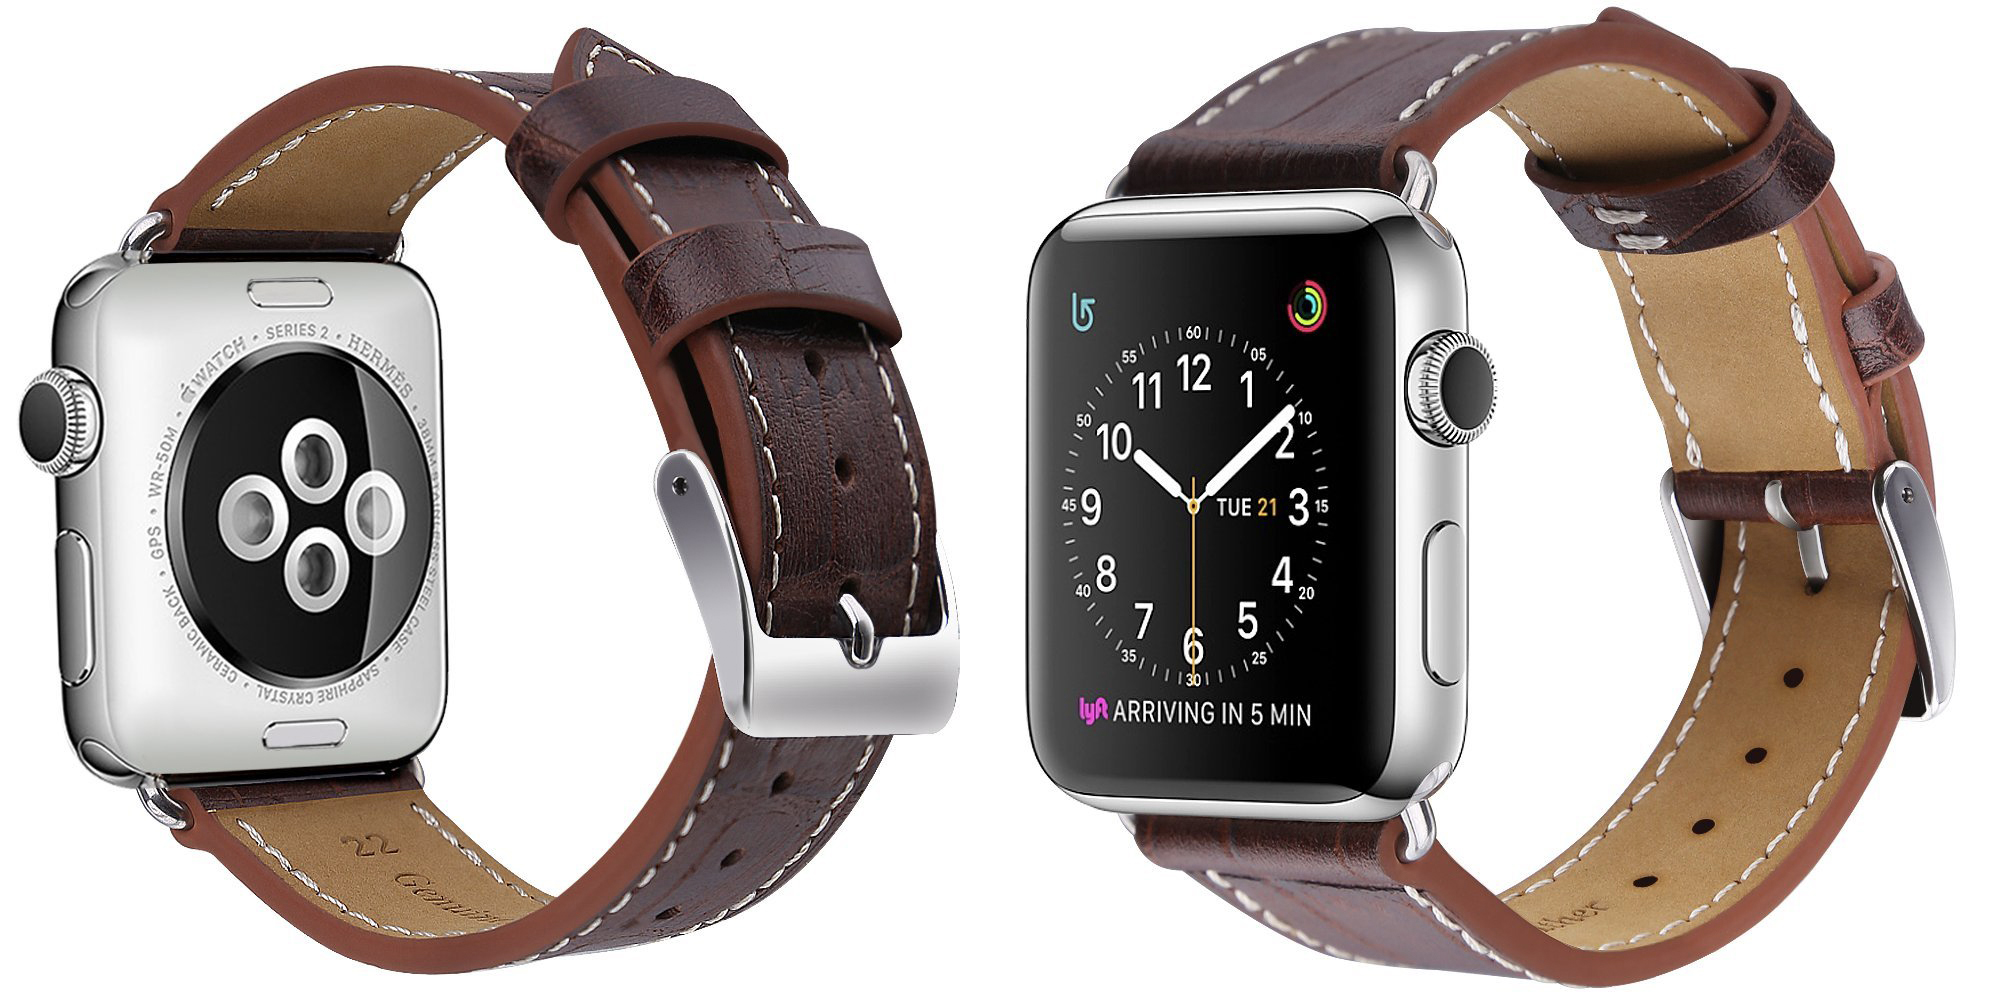 Grab a new $5 leather Apple Watch band in multiple sizes and colors